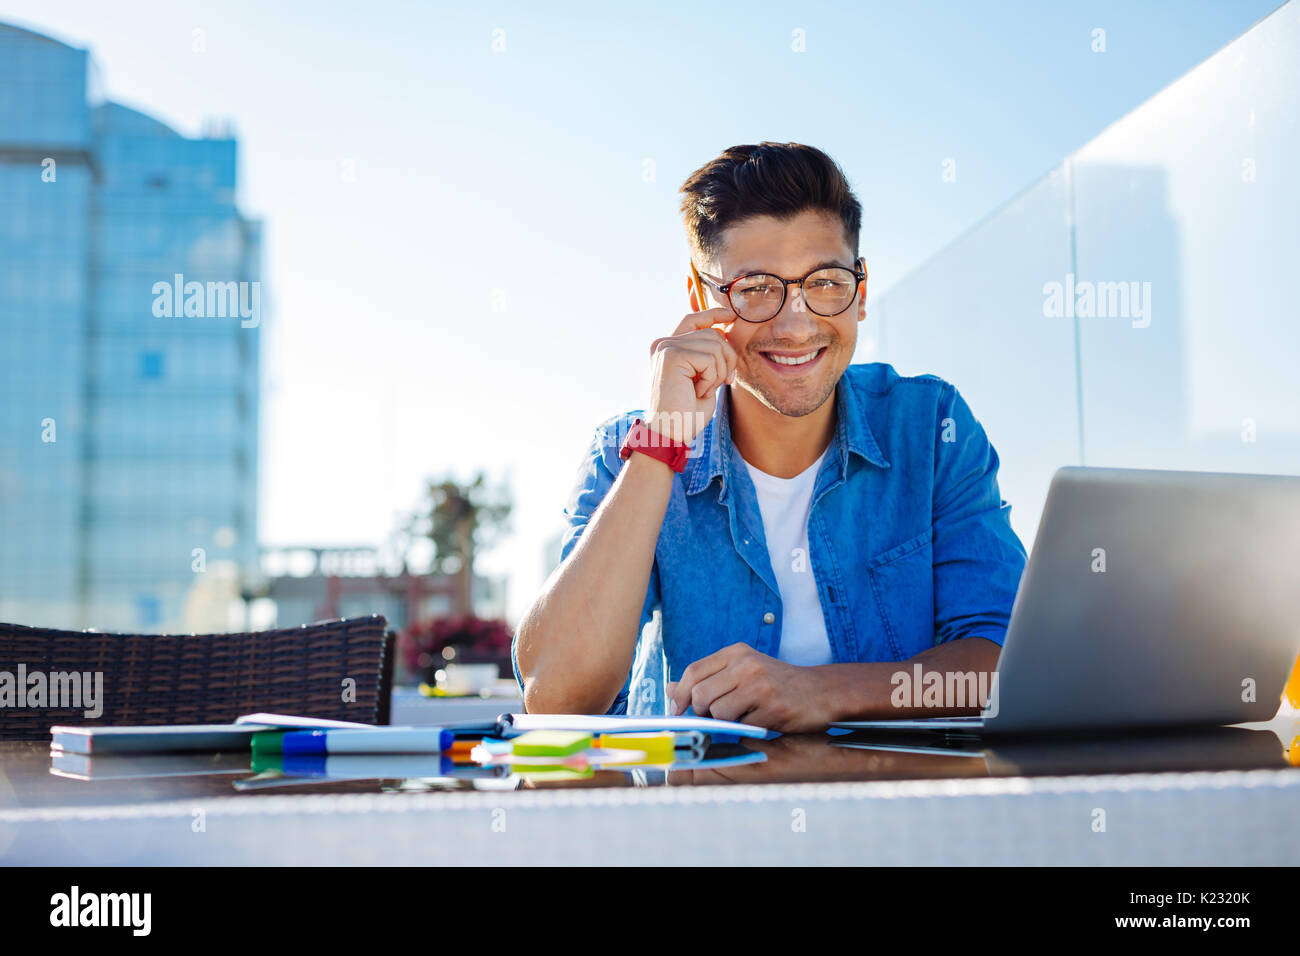 Charming college guy smiling into camera while working on hometask - Stock Image